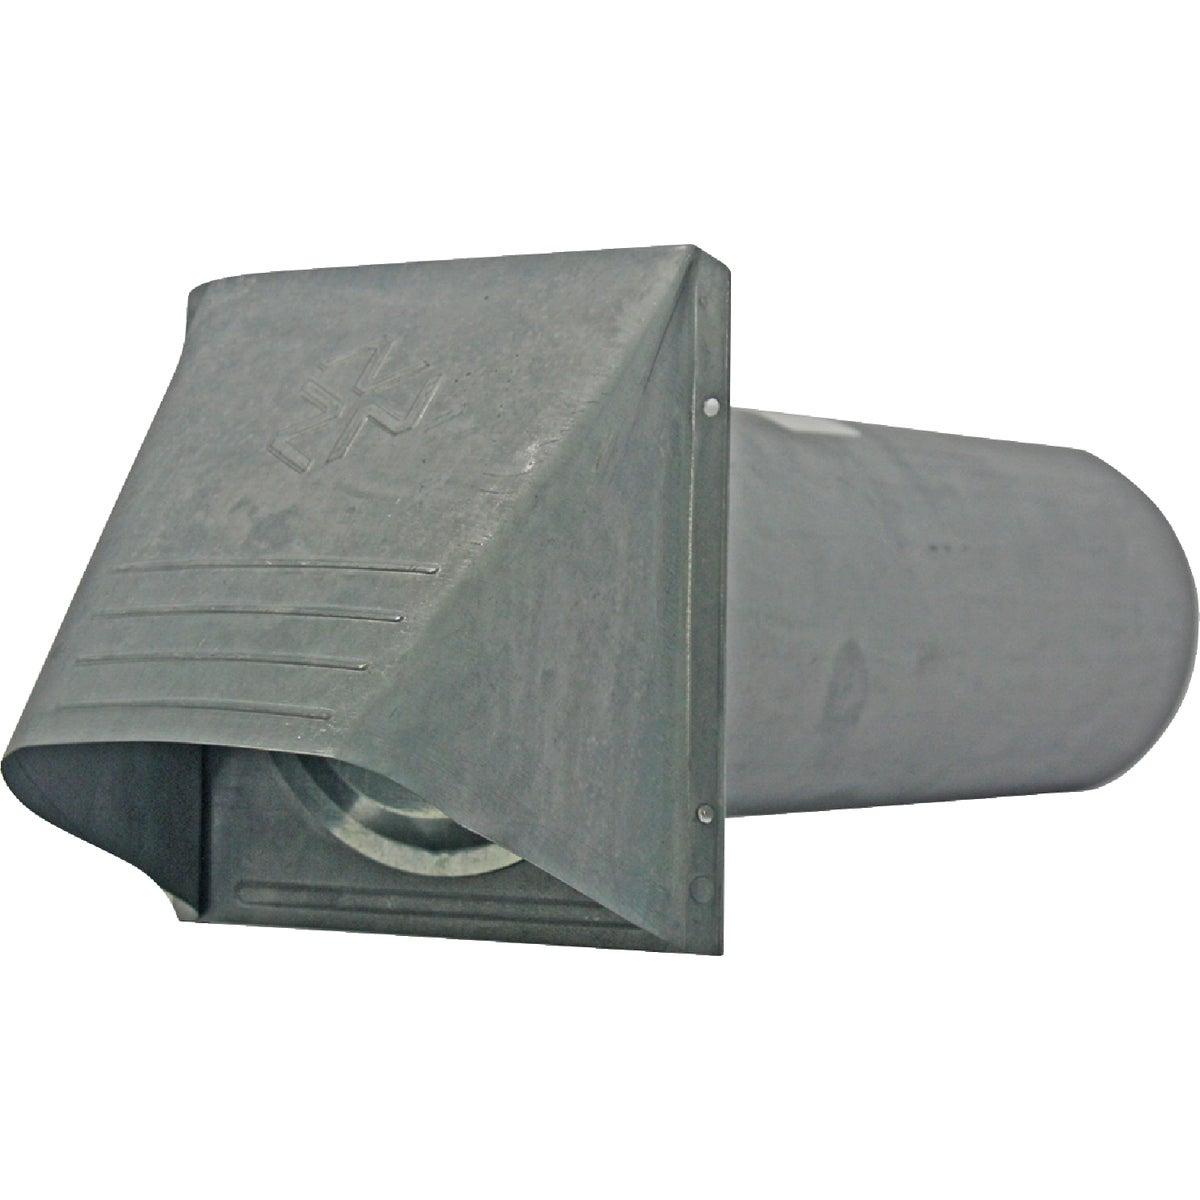 "4"" GALV DRYER VENT HOOD - 010889 by Builders Best"